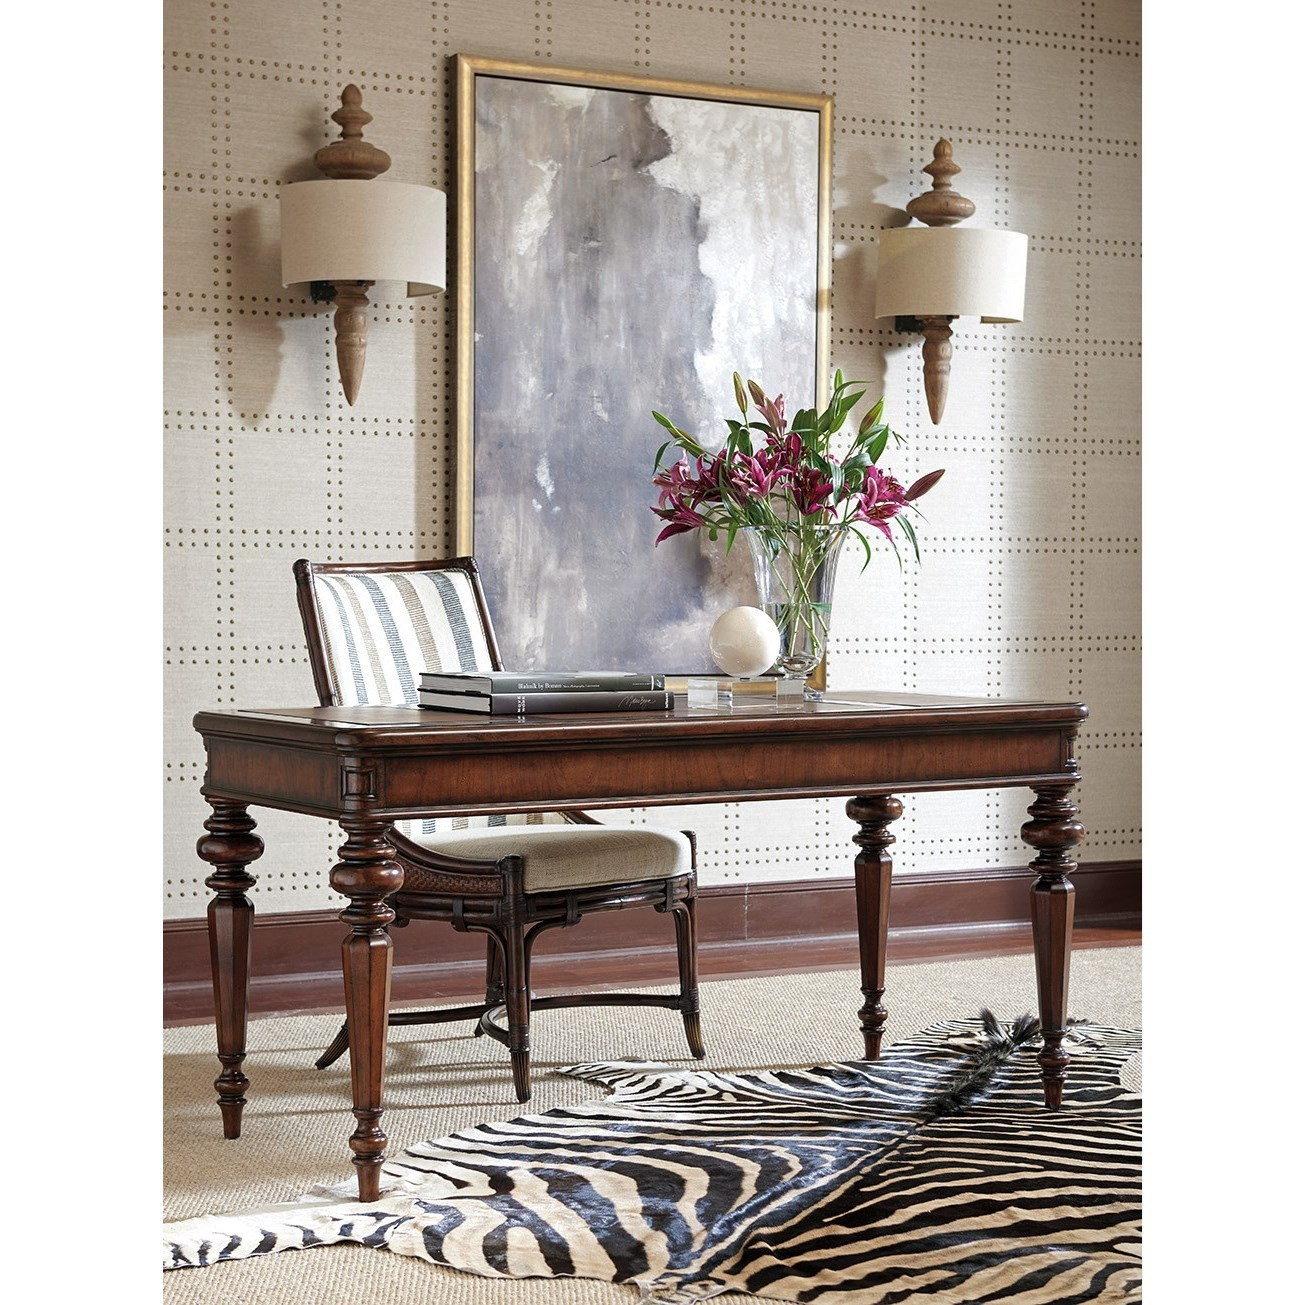 leather sofa richmond hill ikea tylosand covers uk sligh 305 412 rosslyn writing desk with faux